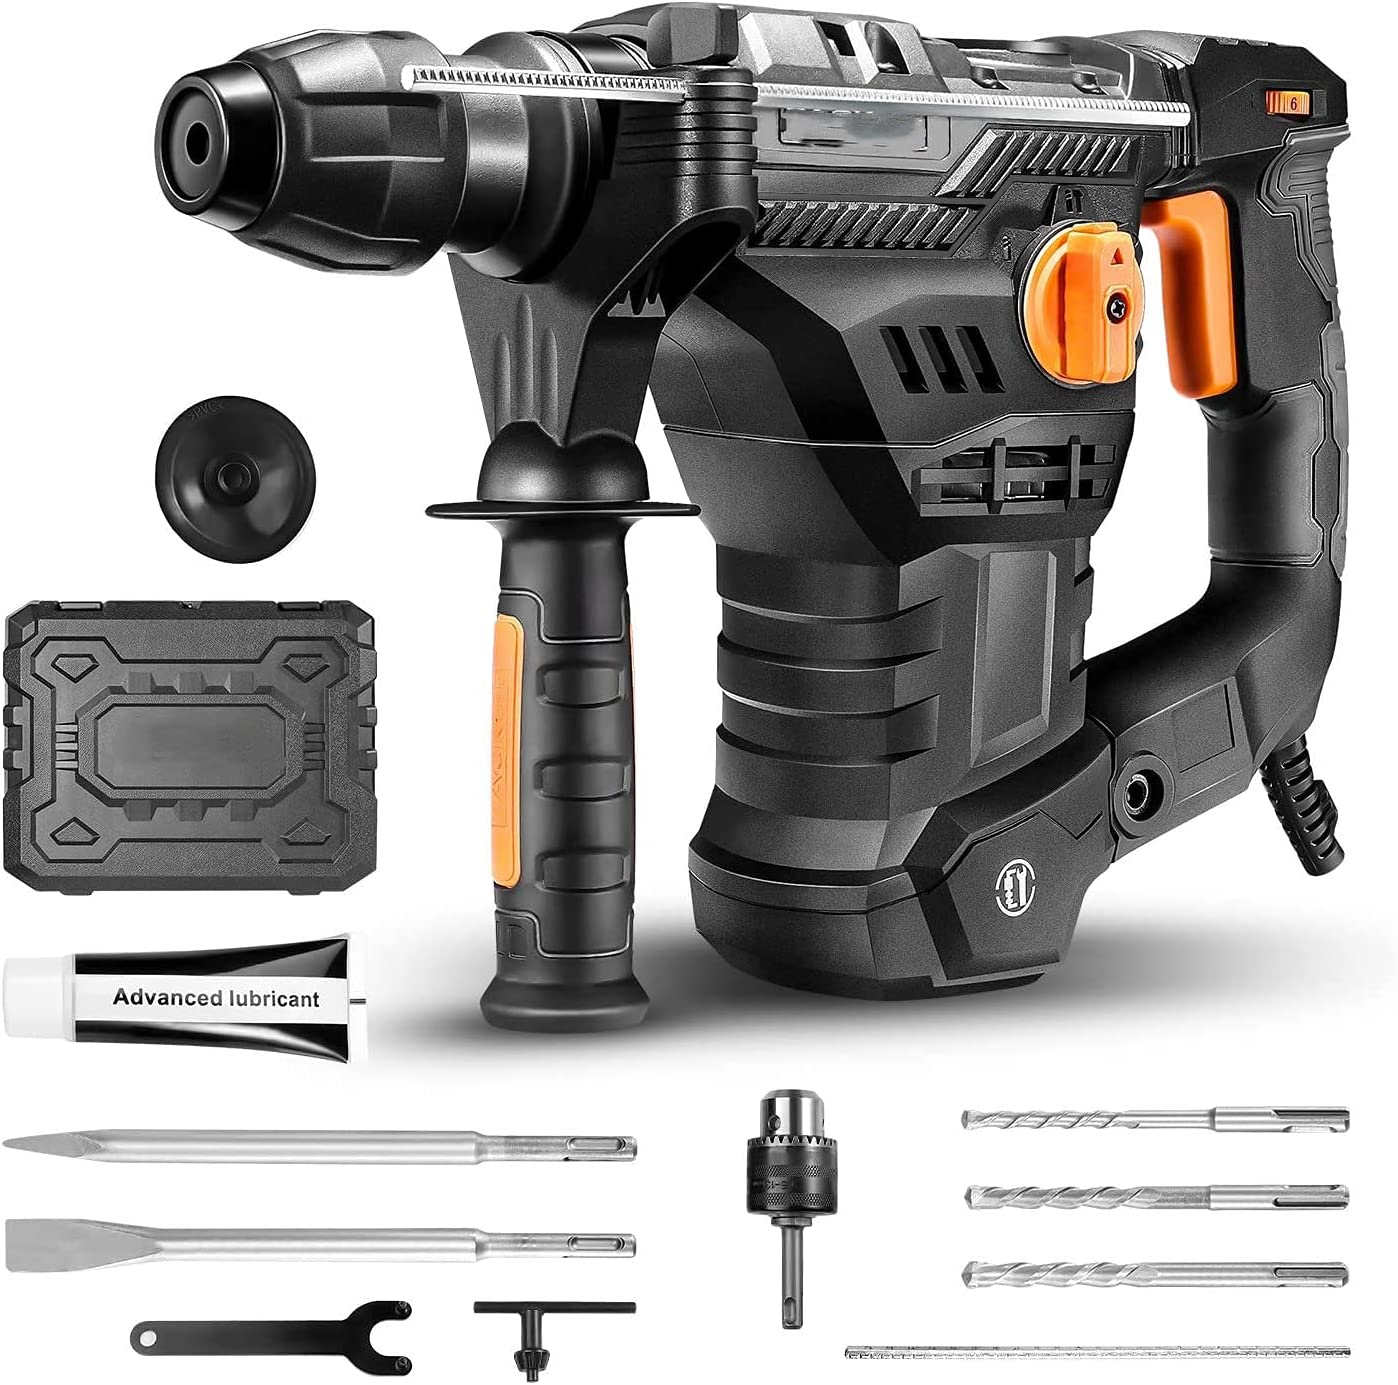 """TRH01A 1-1/4"""" SDS Plus 12.3 AMP Rotary Hammer Drill $60.49 Coupon"""